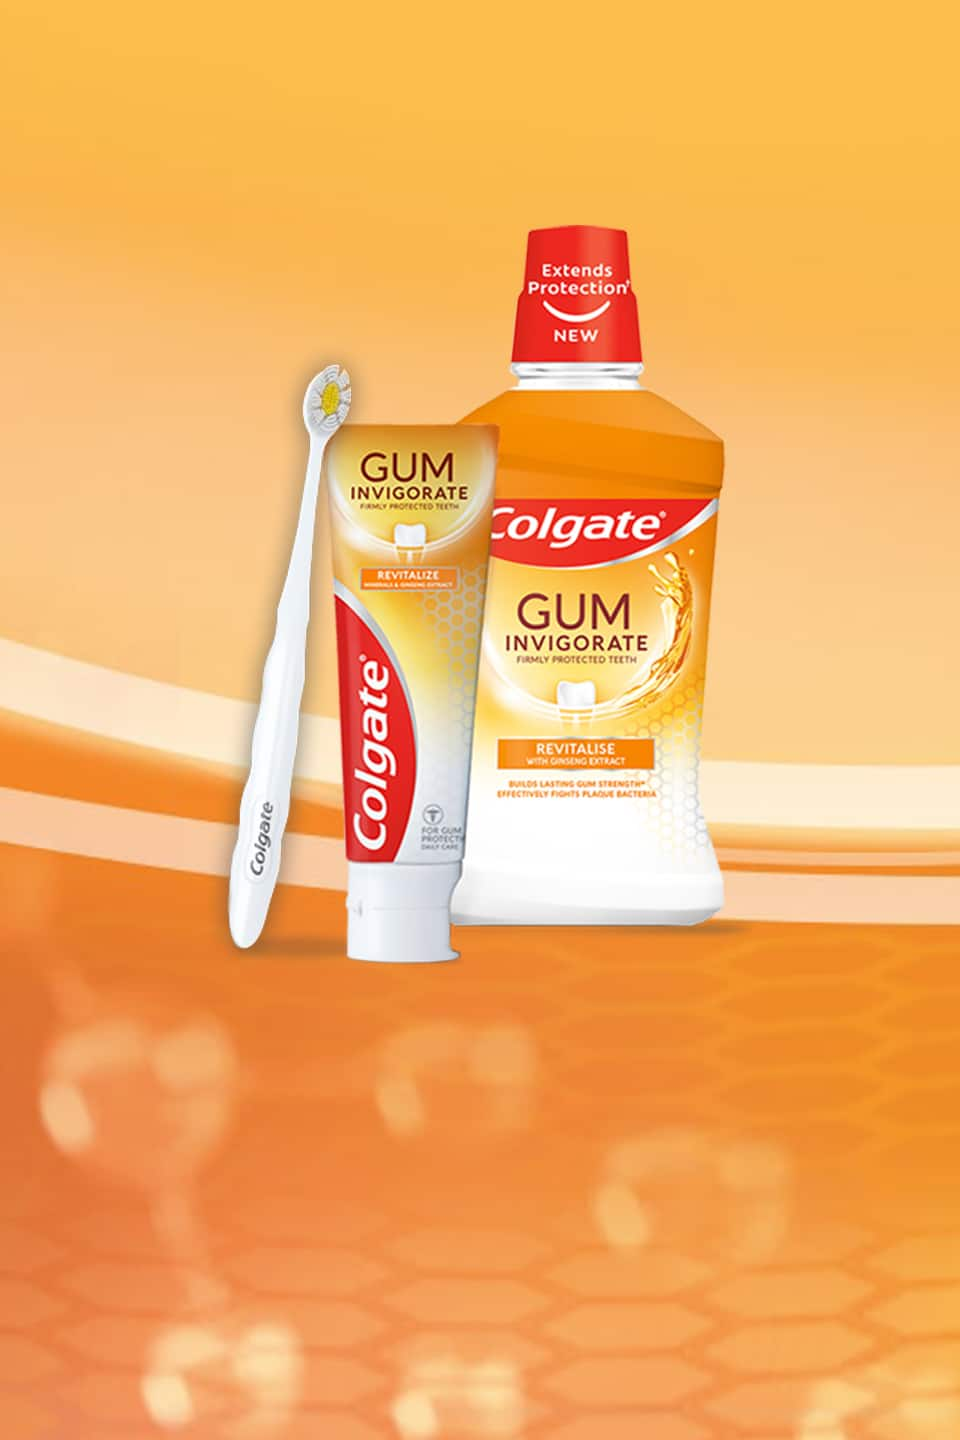 Colgate® Gum Invigorate